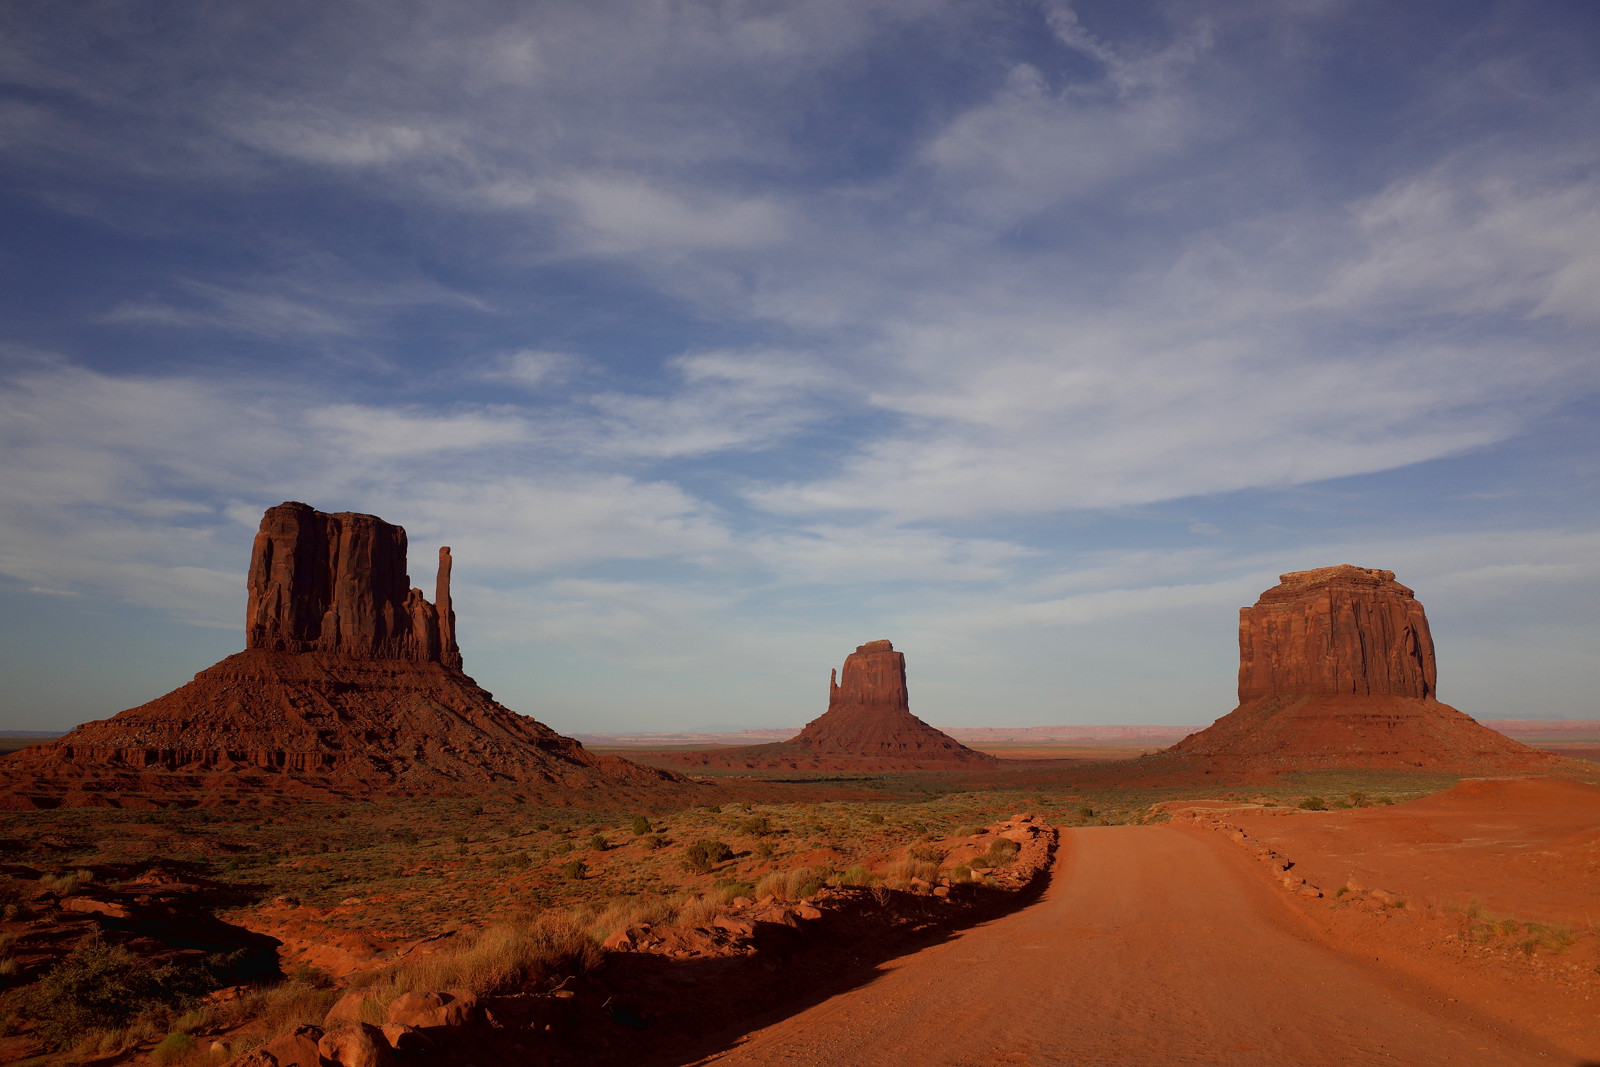 The Mittens of Monument Valley at sunset